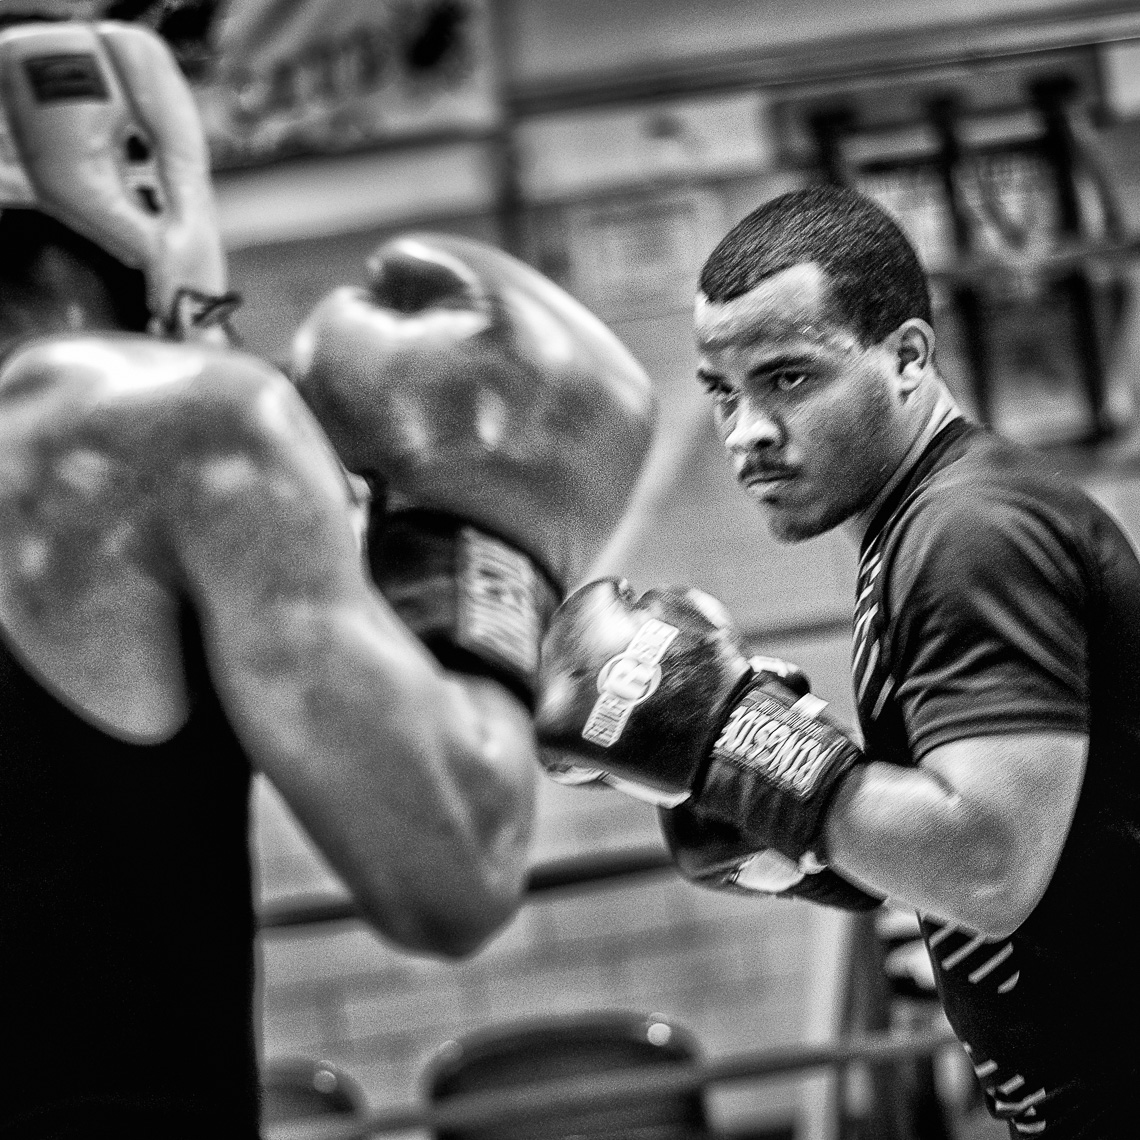 Kevin Steele - two boxers training in an urban gym